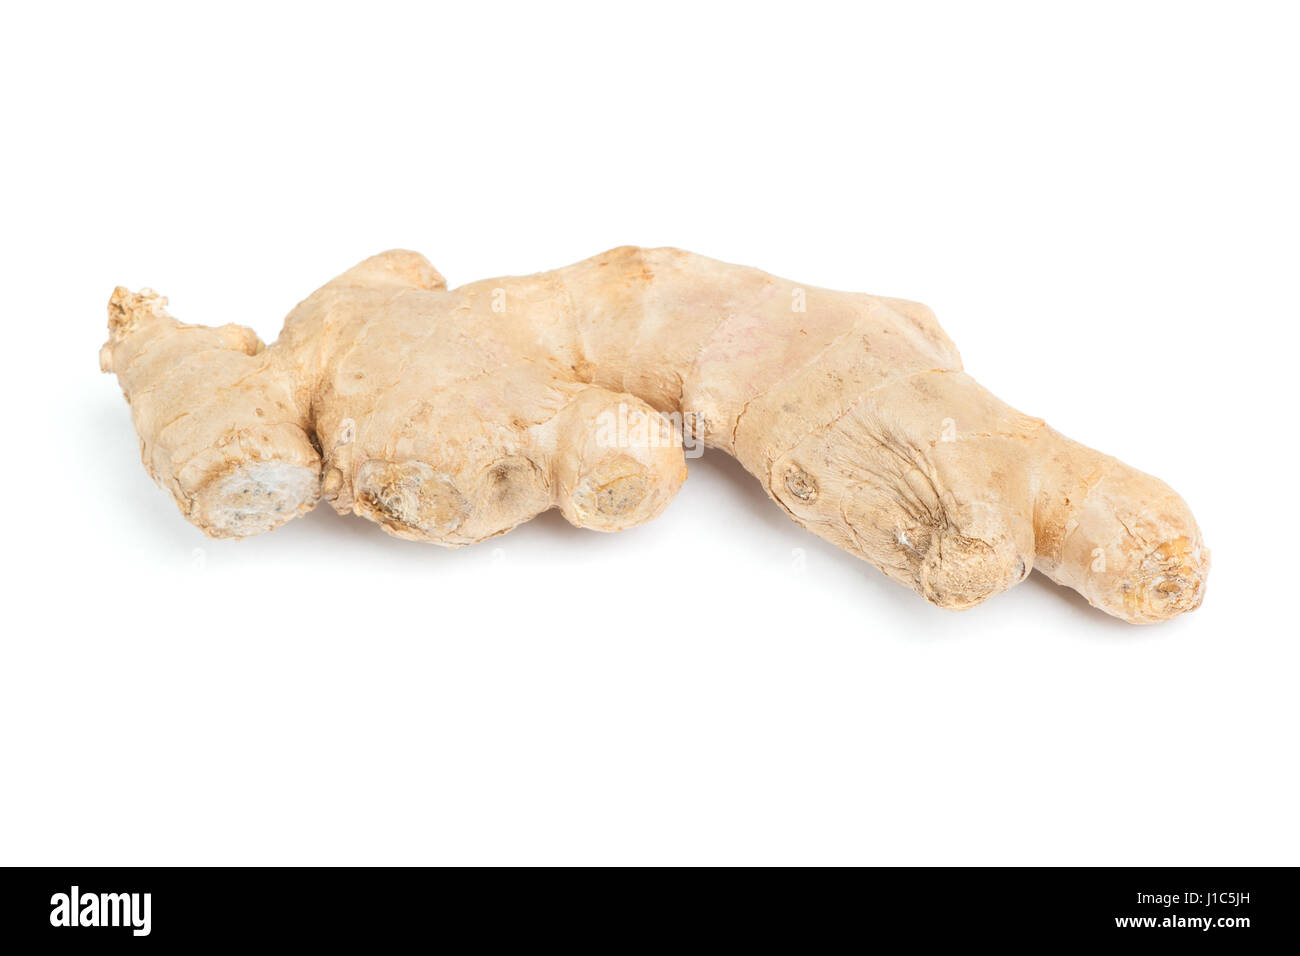 Root ginger isolated on white background - Stock Image